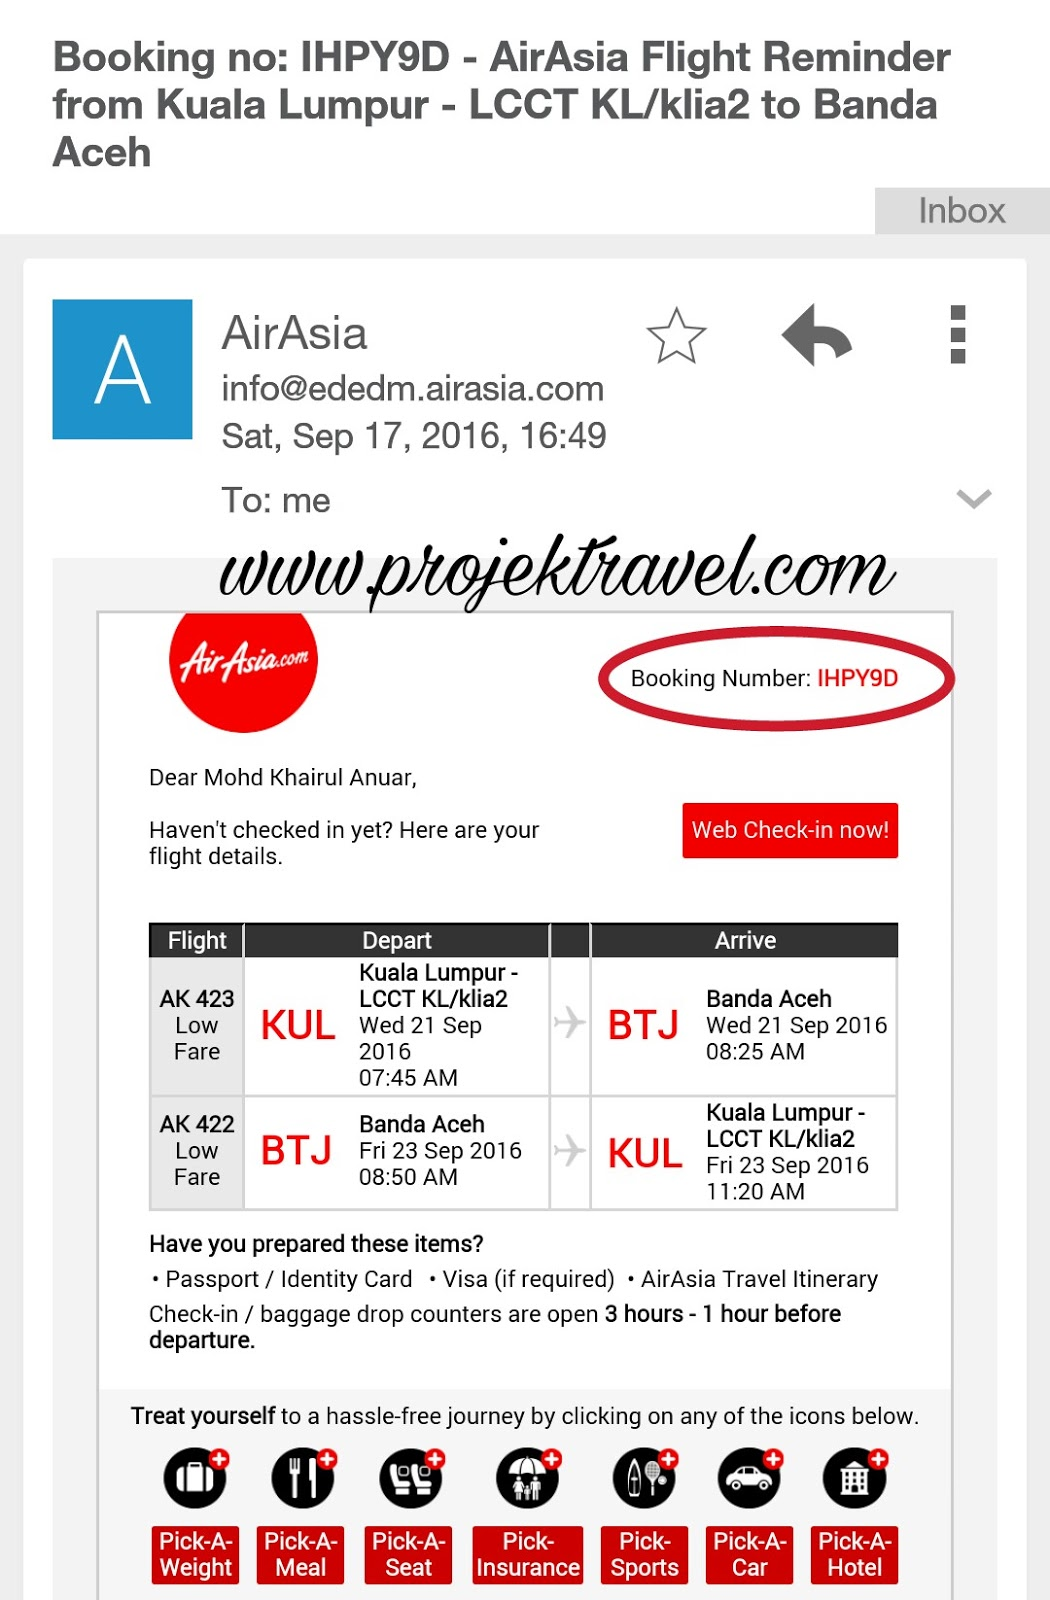 Aug 03,  · How to Check AirAsia Bookings In this Article: Checking Your Bookings Online Calling a Representative to Confirm Bookings Community Q&A 6 References AirAsia is a low-cost airline based in Malaysia that offers domestic and international flights to over cities in 25 countries%(57).